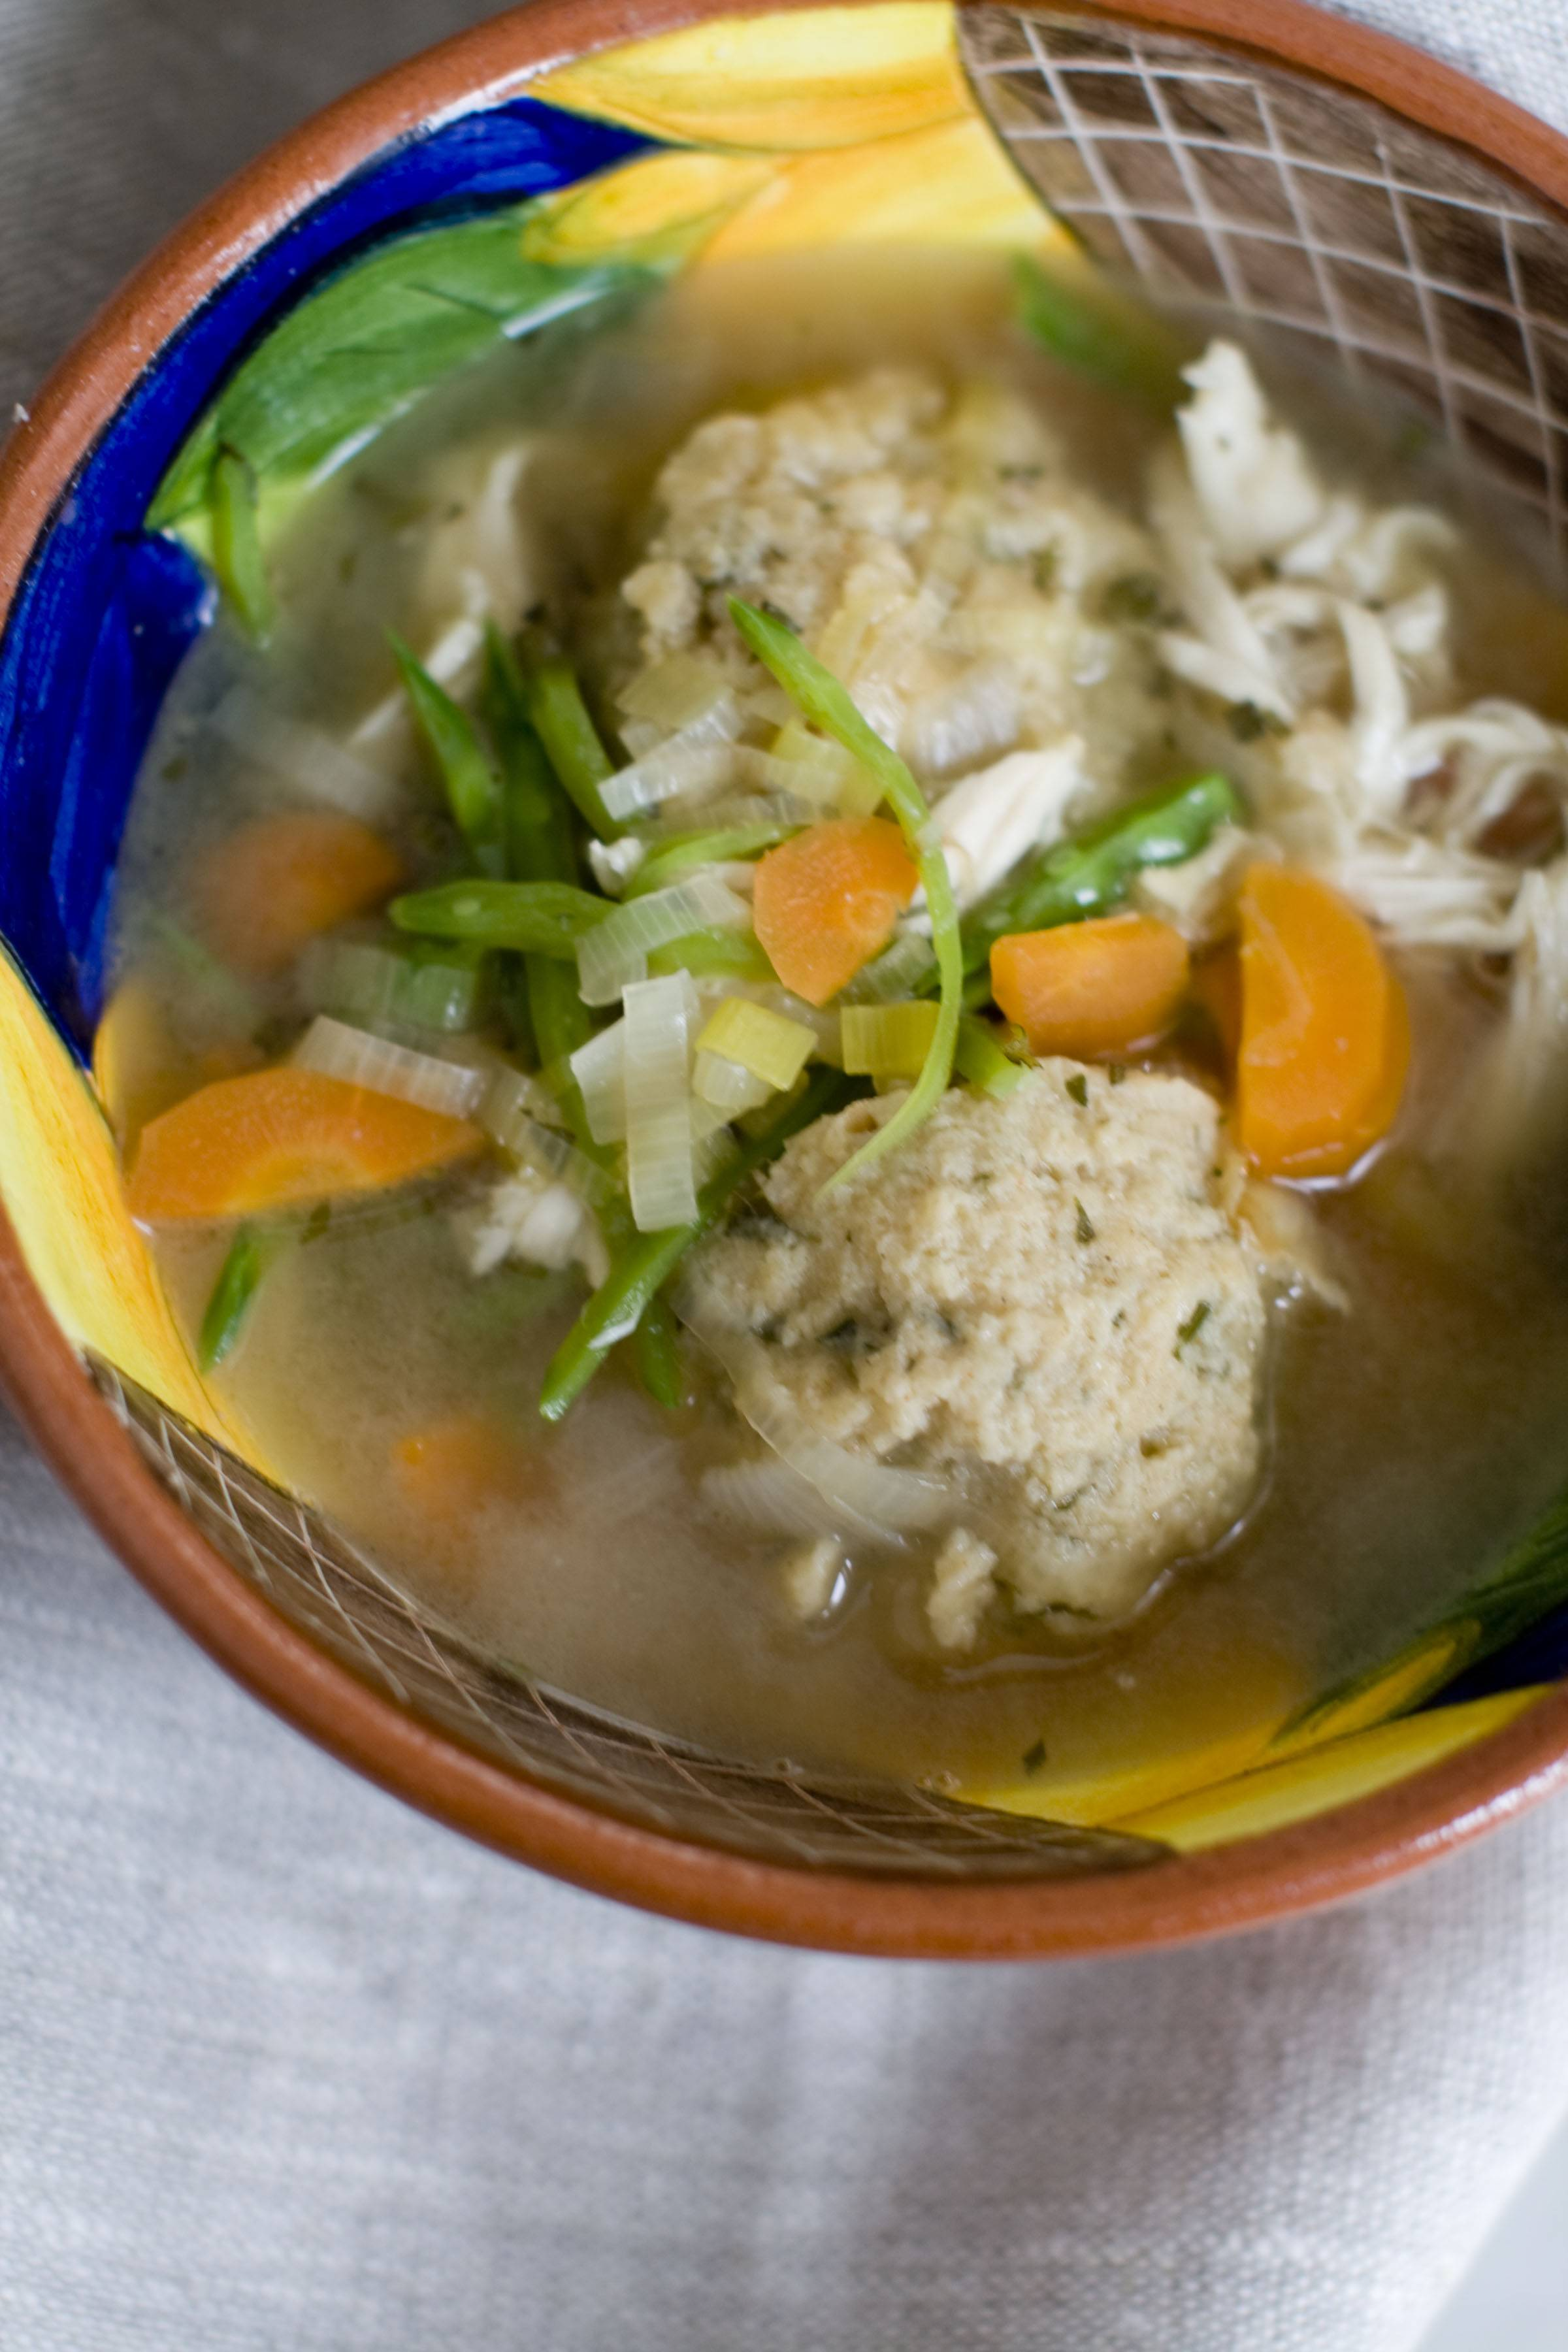 Spring vegetables give matzo ball soup a fresh, seasonal taste.